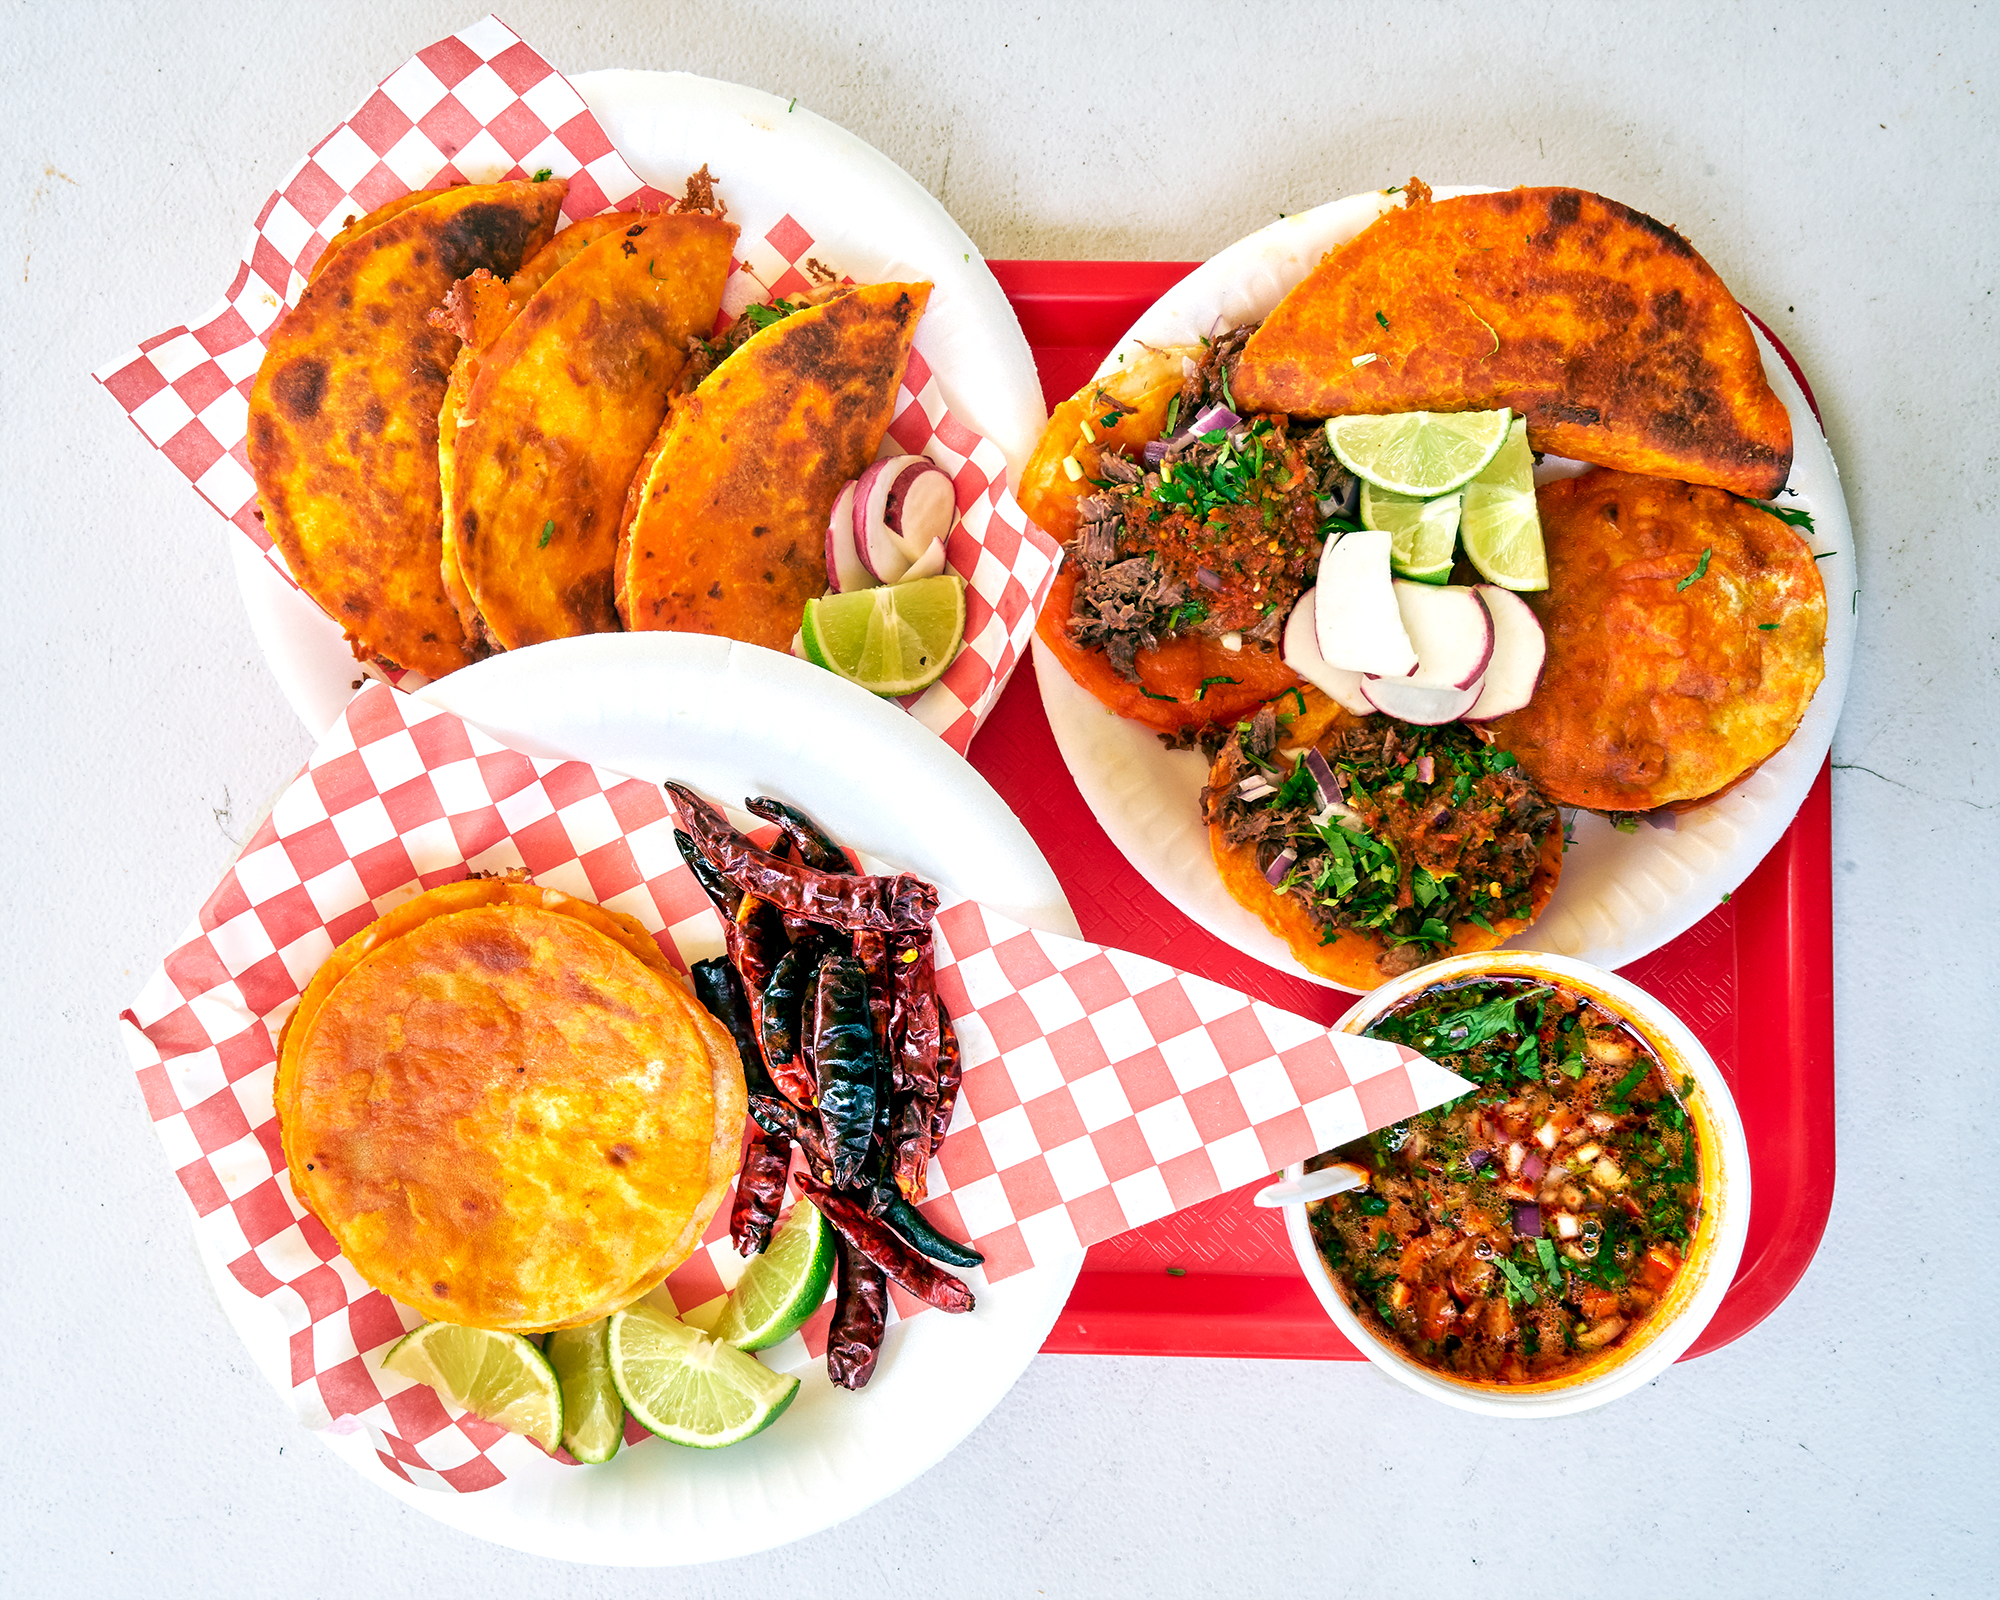 LA's Greatest Morning Treasure Is the Glorious Mexican Breakfast